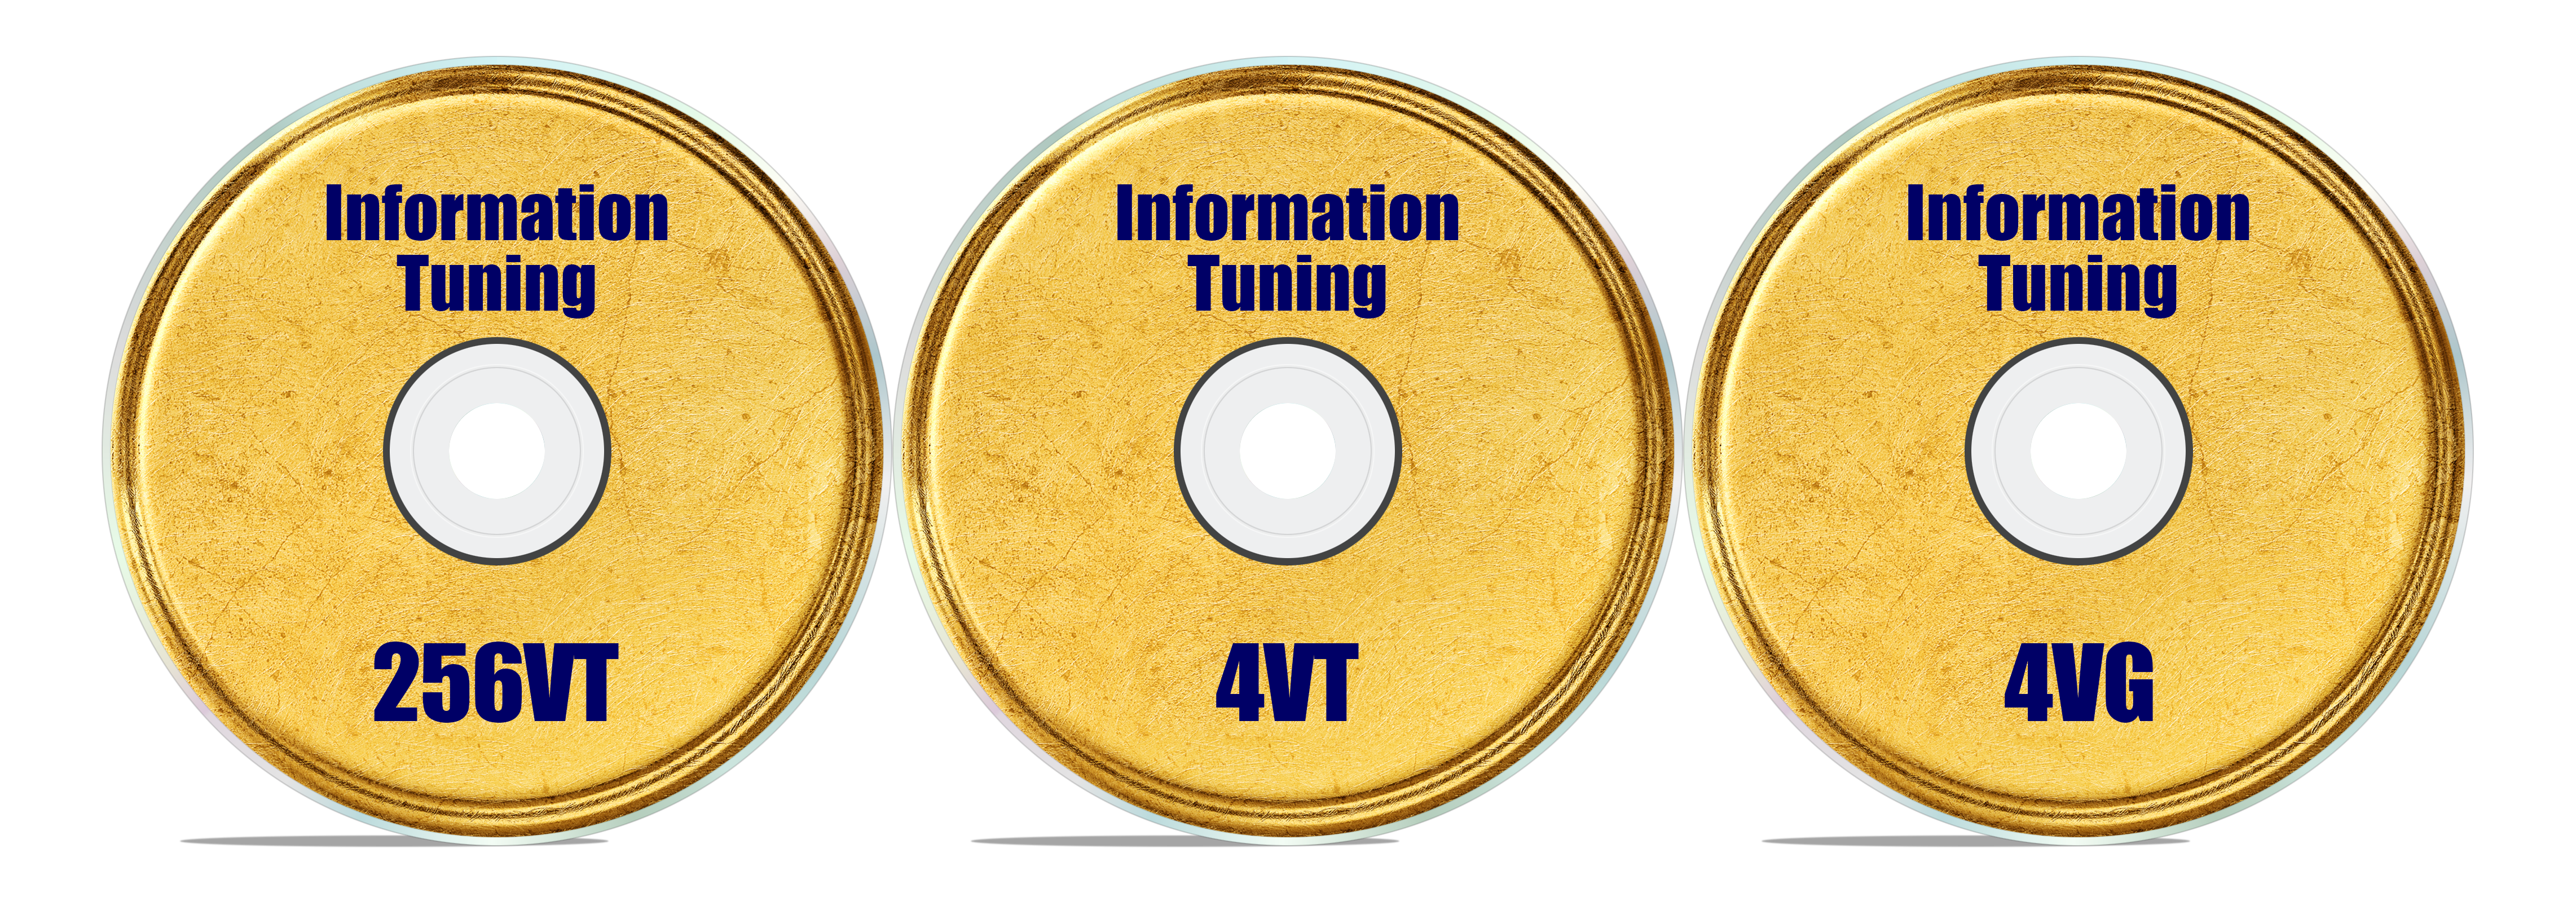 Information Tuning